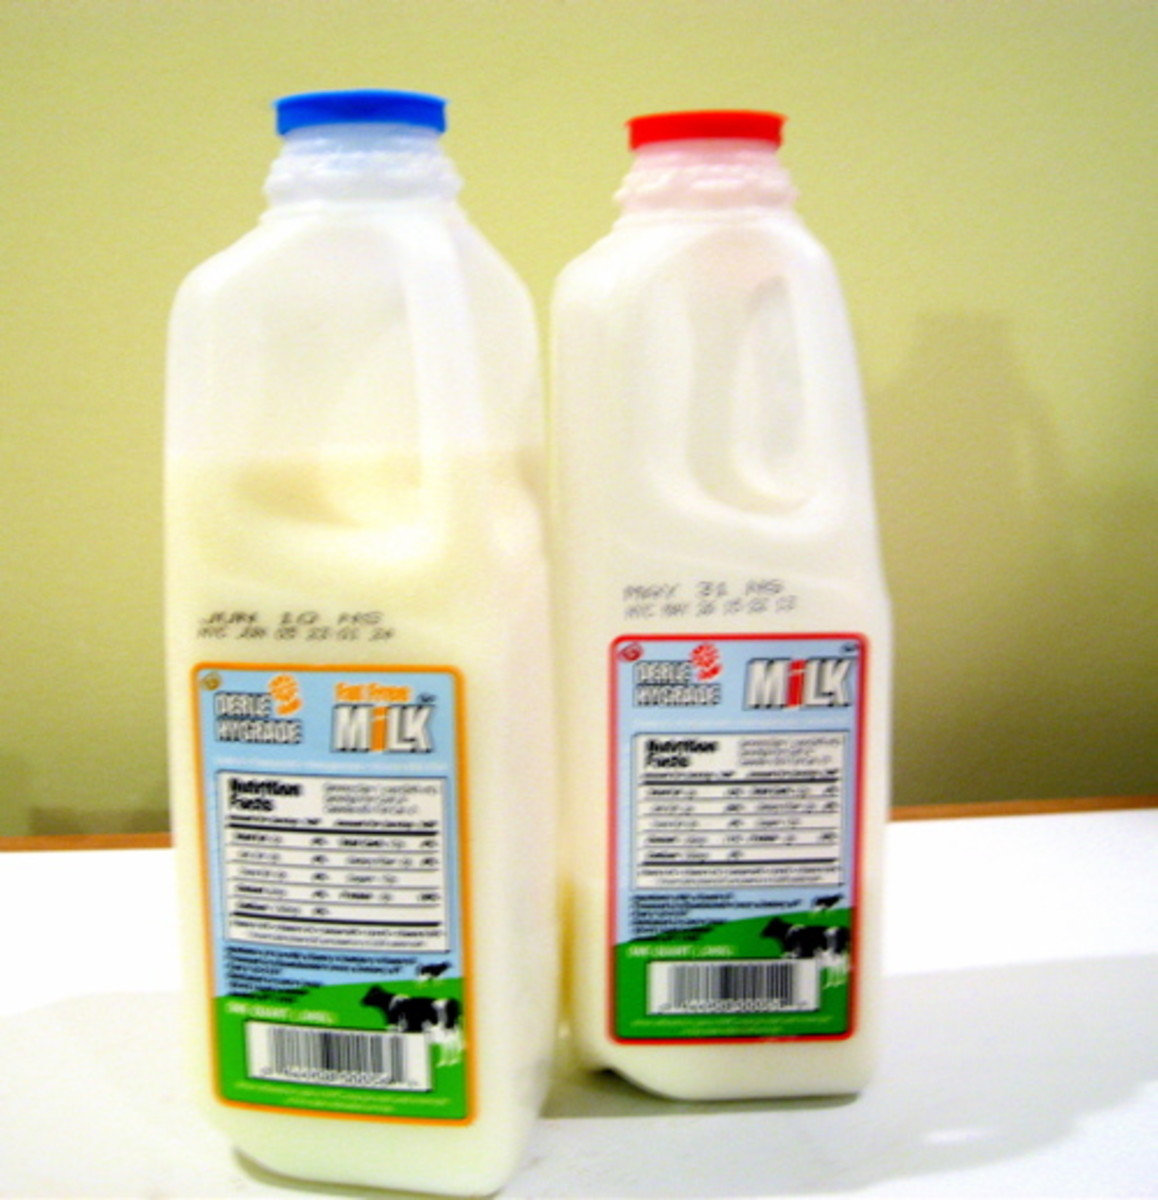 Milk cartons stamped with NYC sell by dates / Photo by E. A. Wright